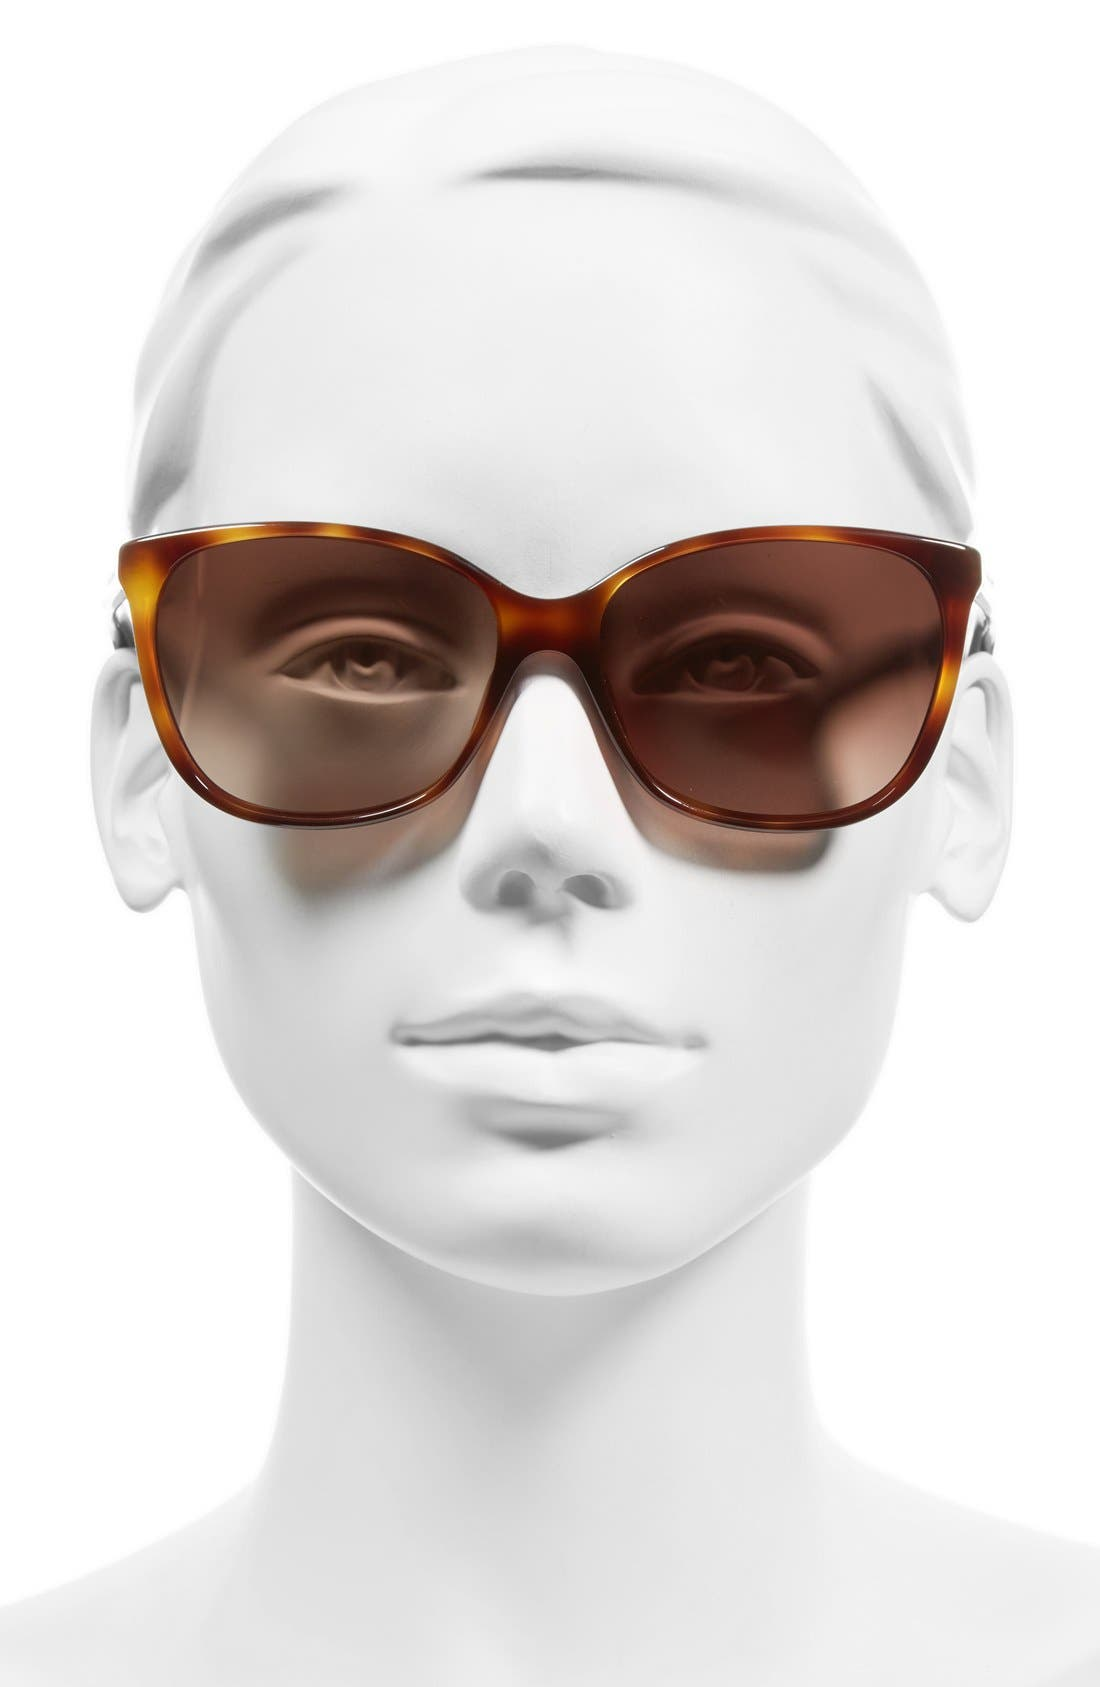 57mm Oversized Sunglasses,                             Alternate thumbnail 2, color,                             210